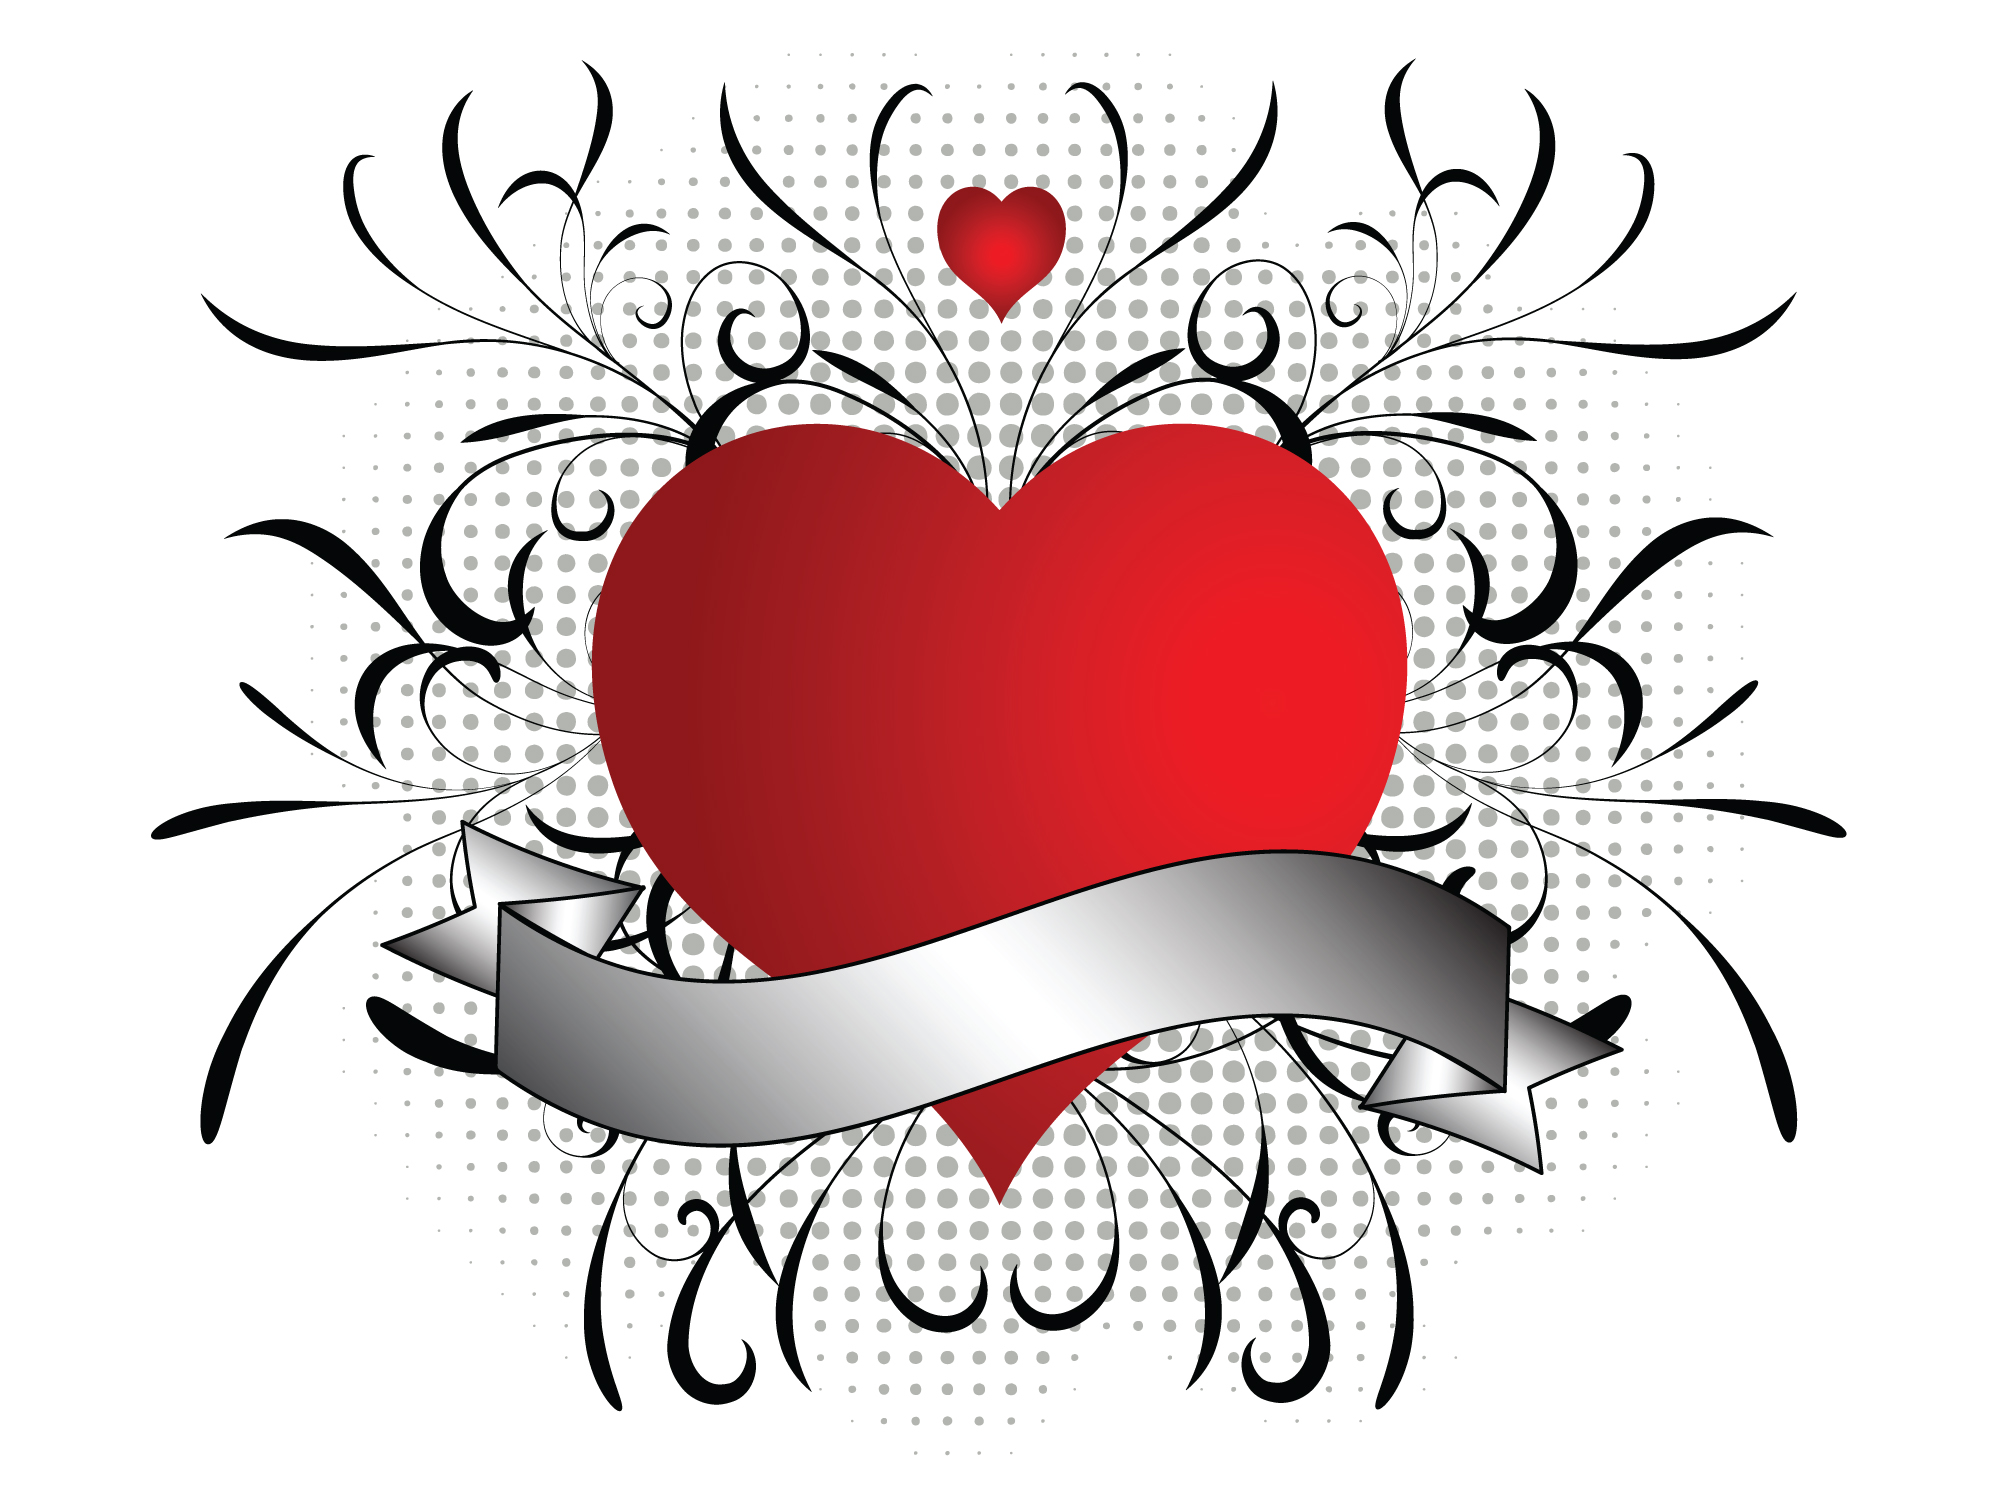 Hearts clipart heart banner Hatfield with heart heart graphics